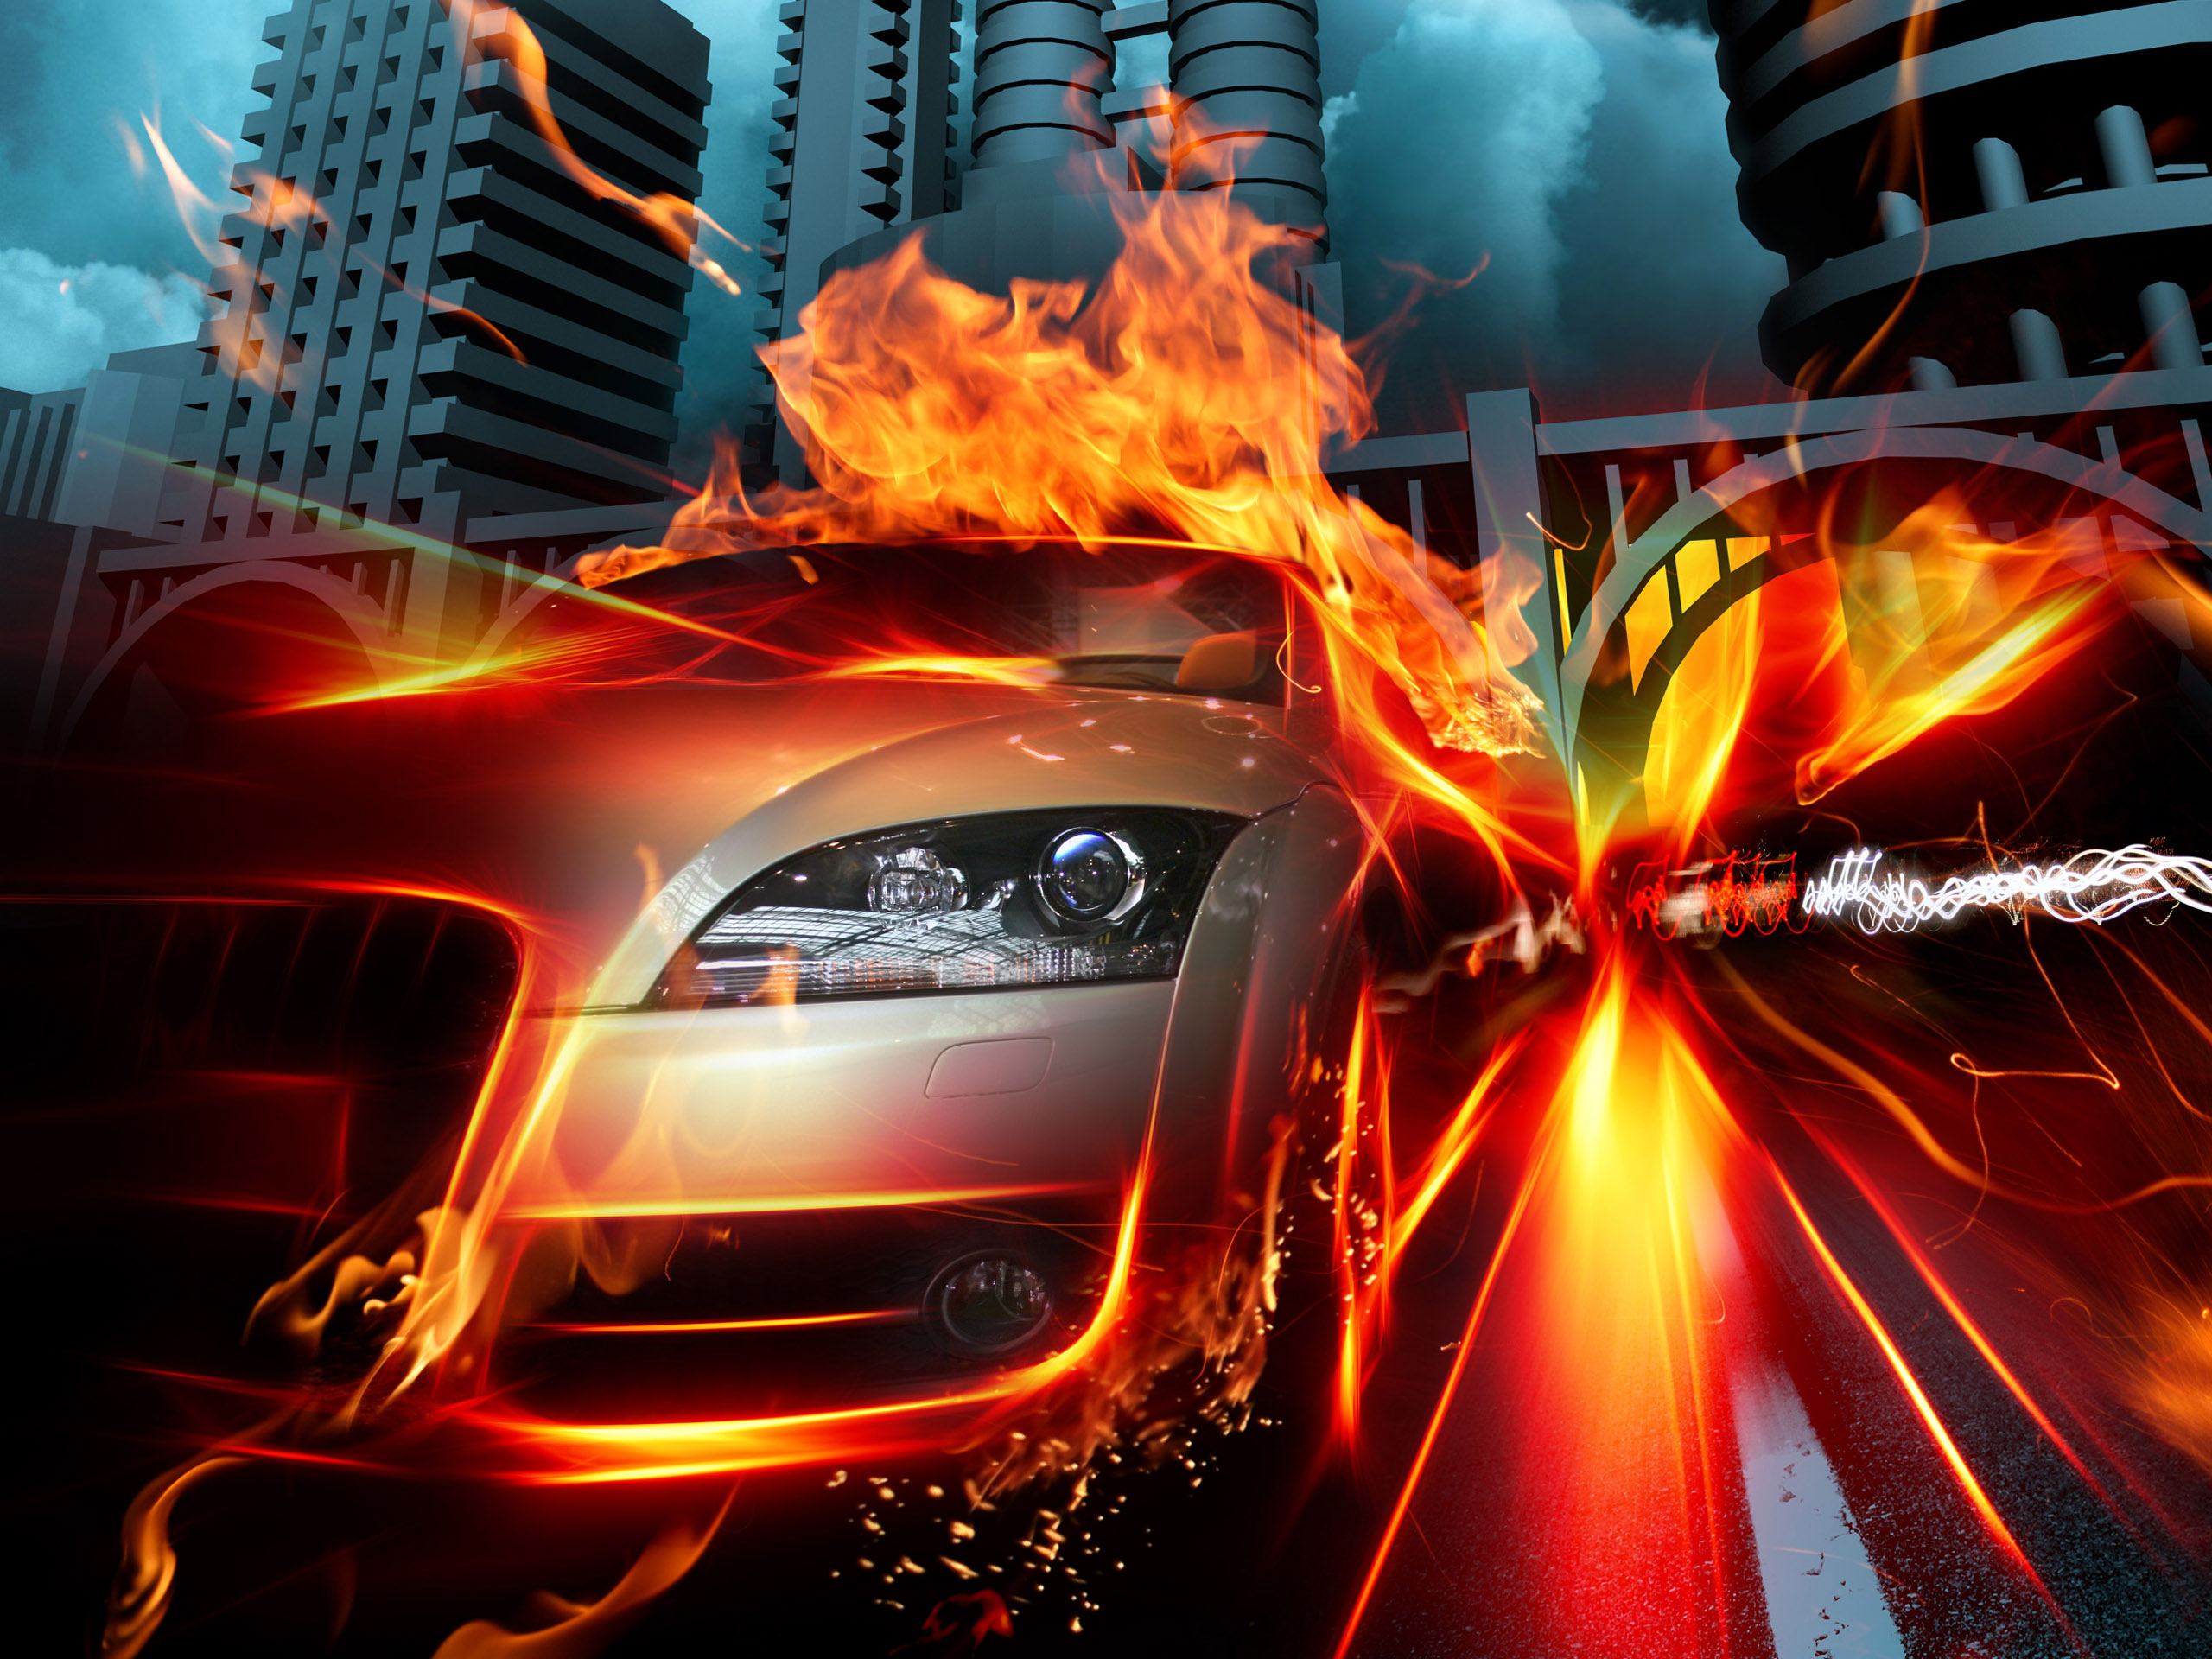 Car in Fire City HQ Wallpapers HD Wallpapers 2560x1920